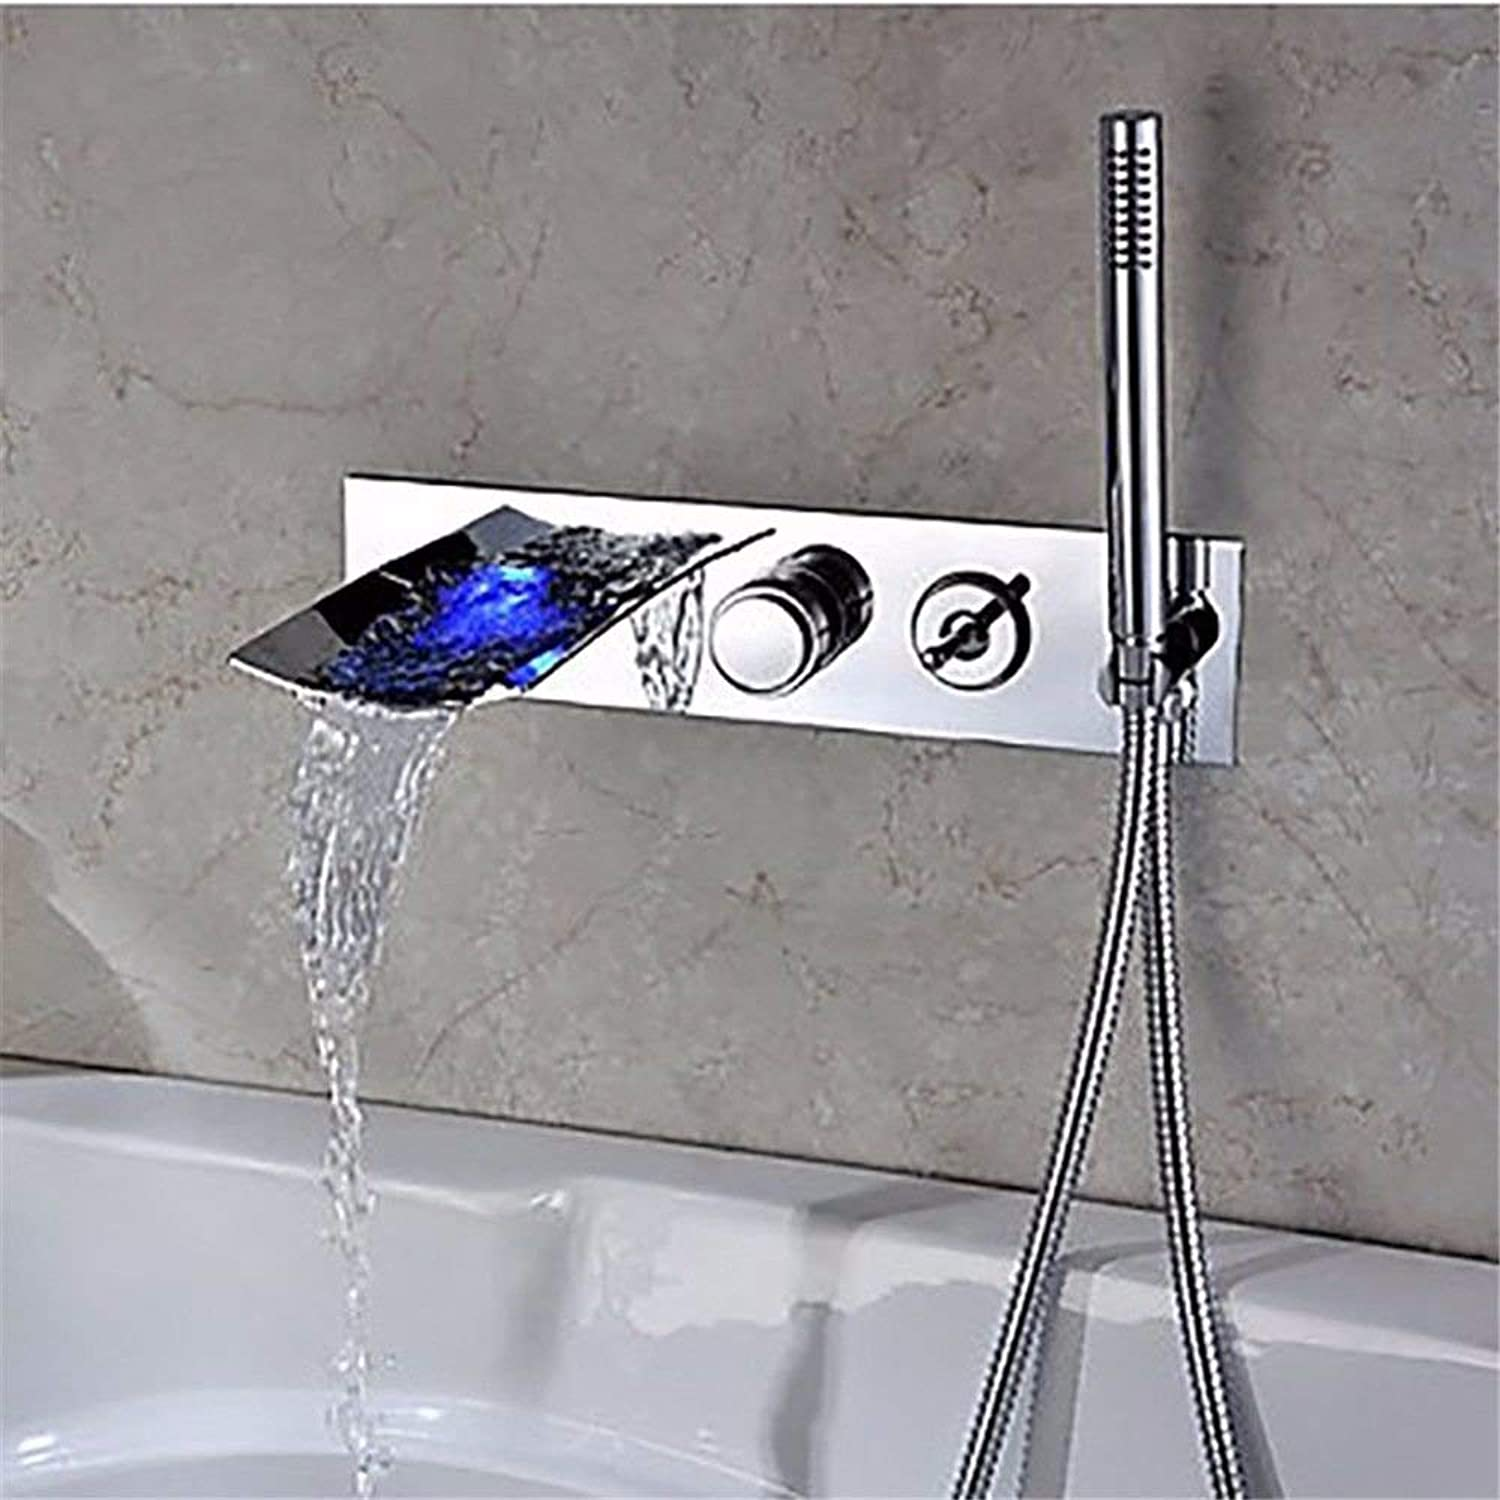 Taps Kitchen Taps Basin Faucets Cold And Hot Water Mixer Bathroom Mixer Basin Mixer Tap Modern Led Shower Set Waterfall Hot And Cold Ceramic Valve Three Holes Double Handle For Kitchen Or Bathroom Tap